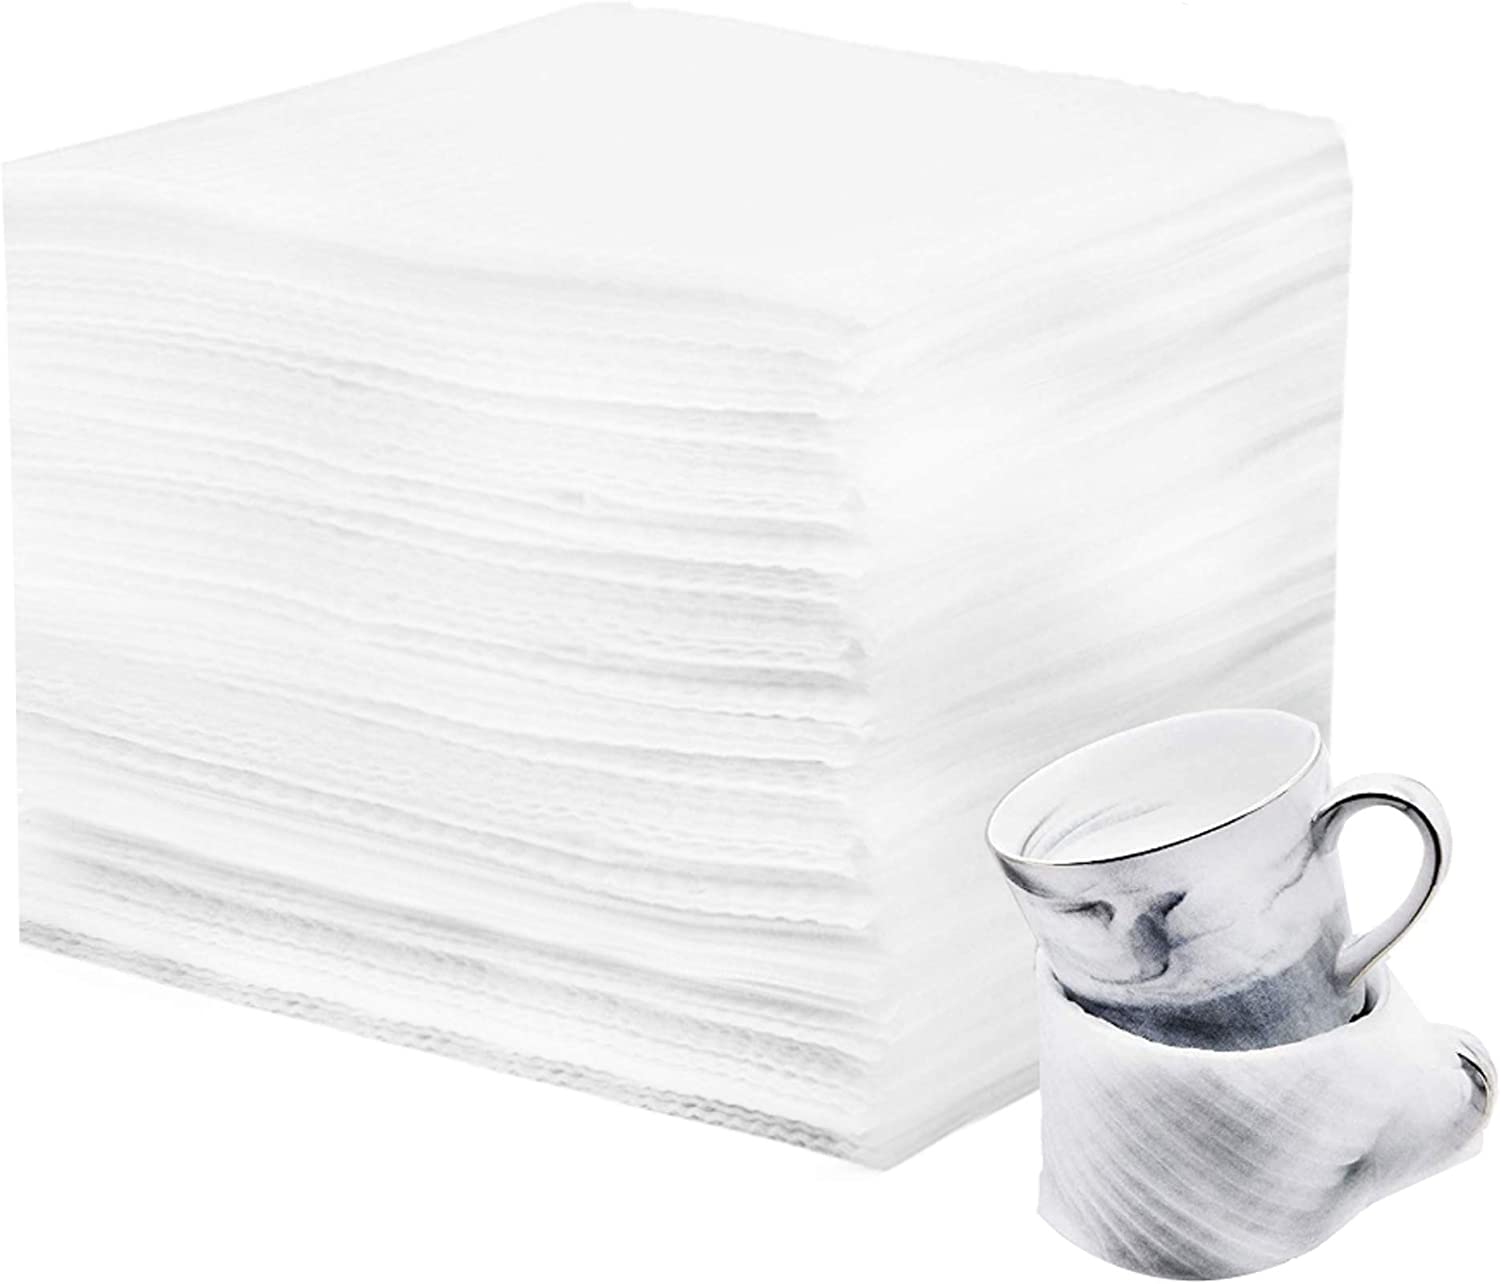 110 Count - 12 Inches x 12 Inches Cushion Foam Wrap Sheets Moving Supplies Packing Foam Packing Material for Dishes, Plates, Glasses, Cups, Furniture Legs or Edges, for all Purpose Protection, Storage